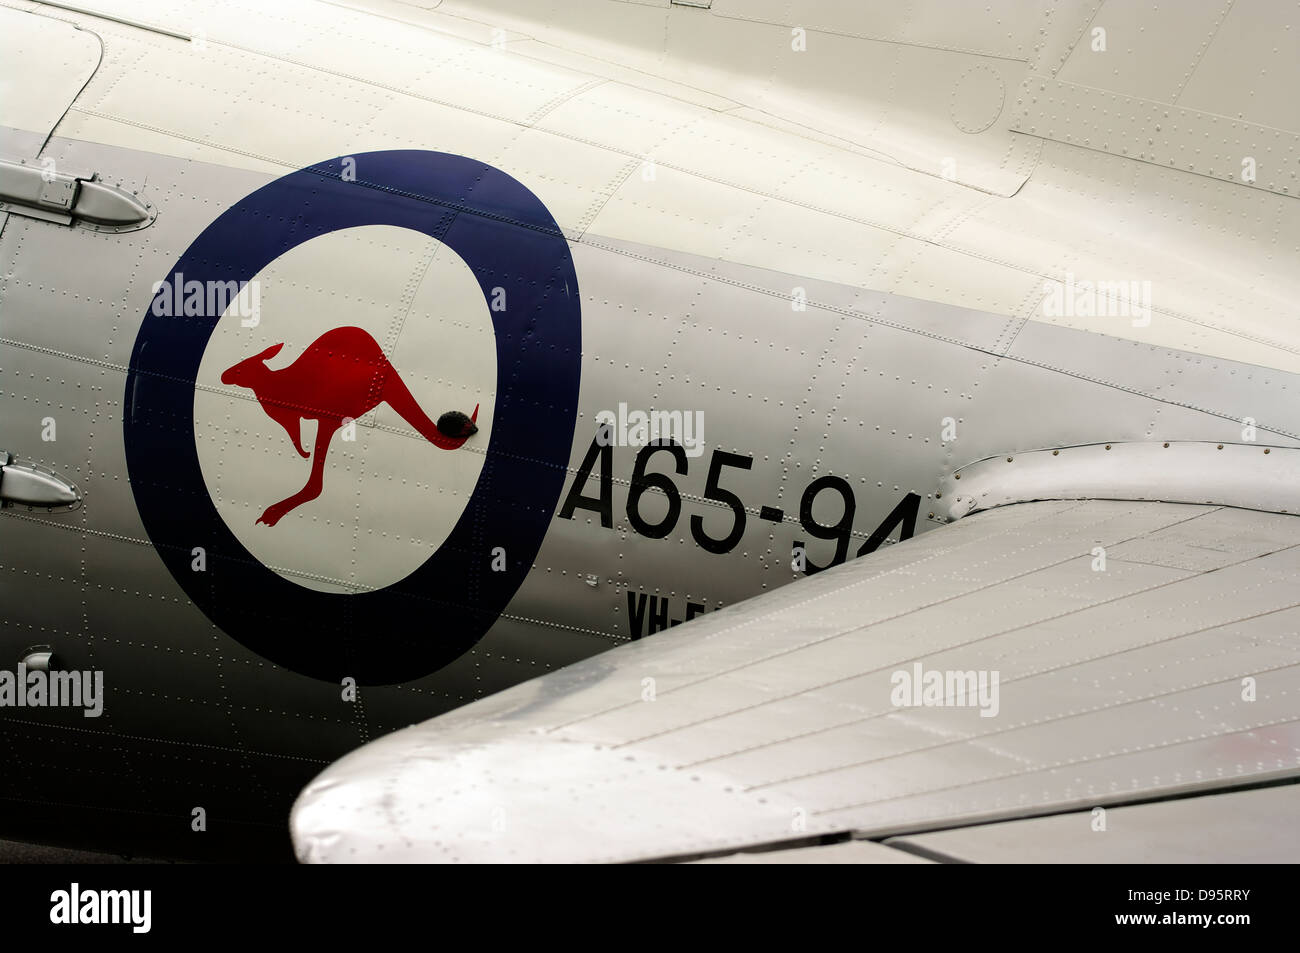 Royal Australian Air Force roundel on the fuselage of a vintage aircraft. - Stock Image